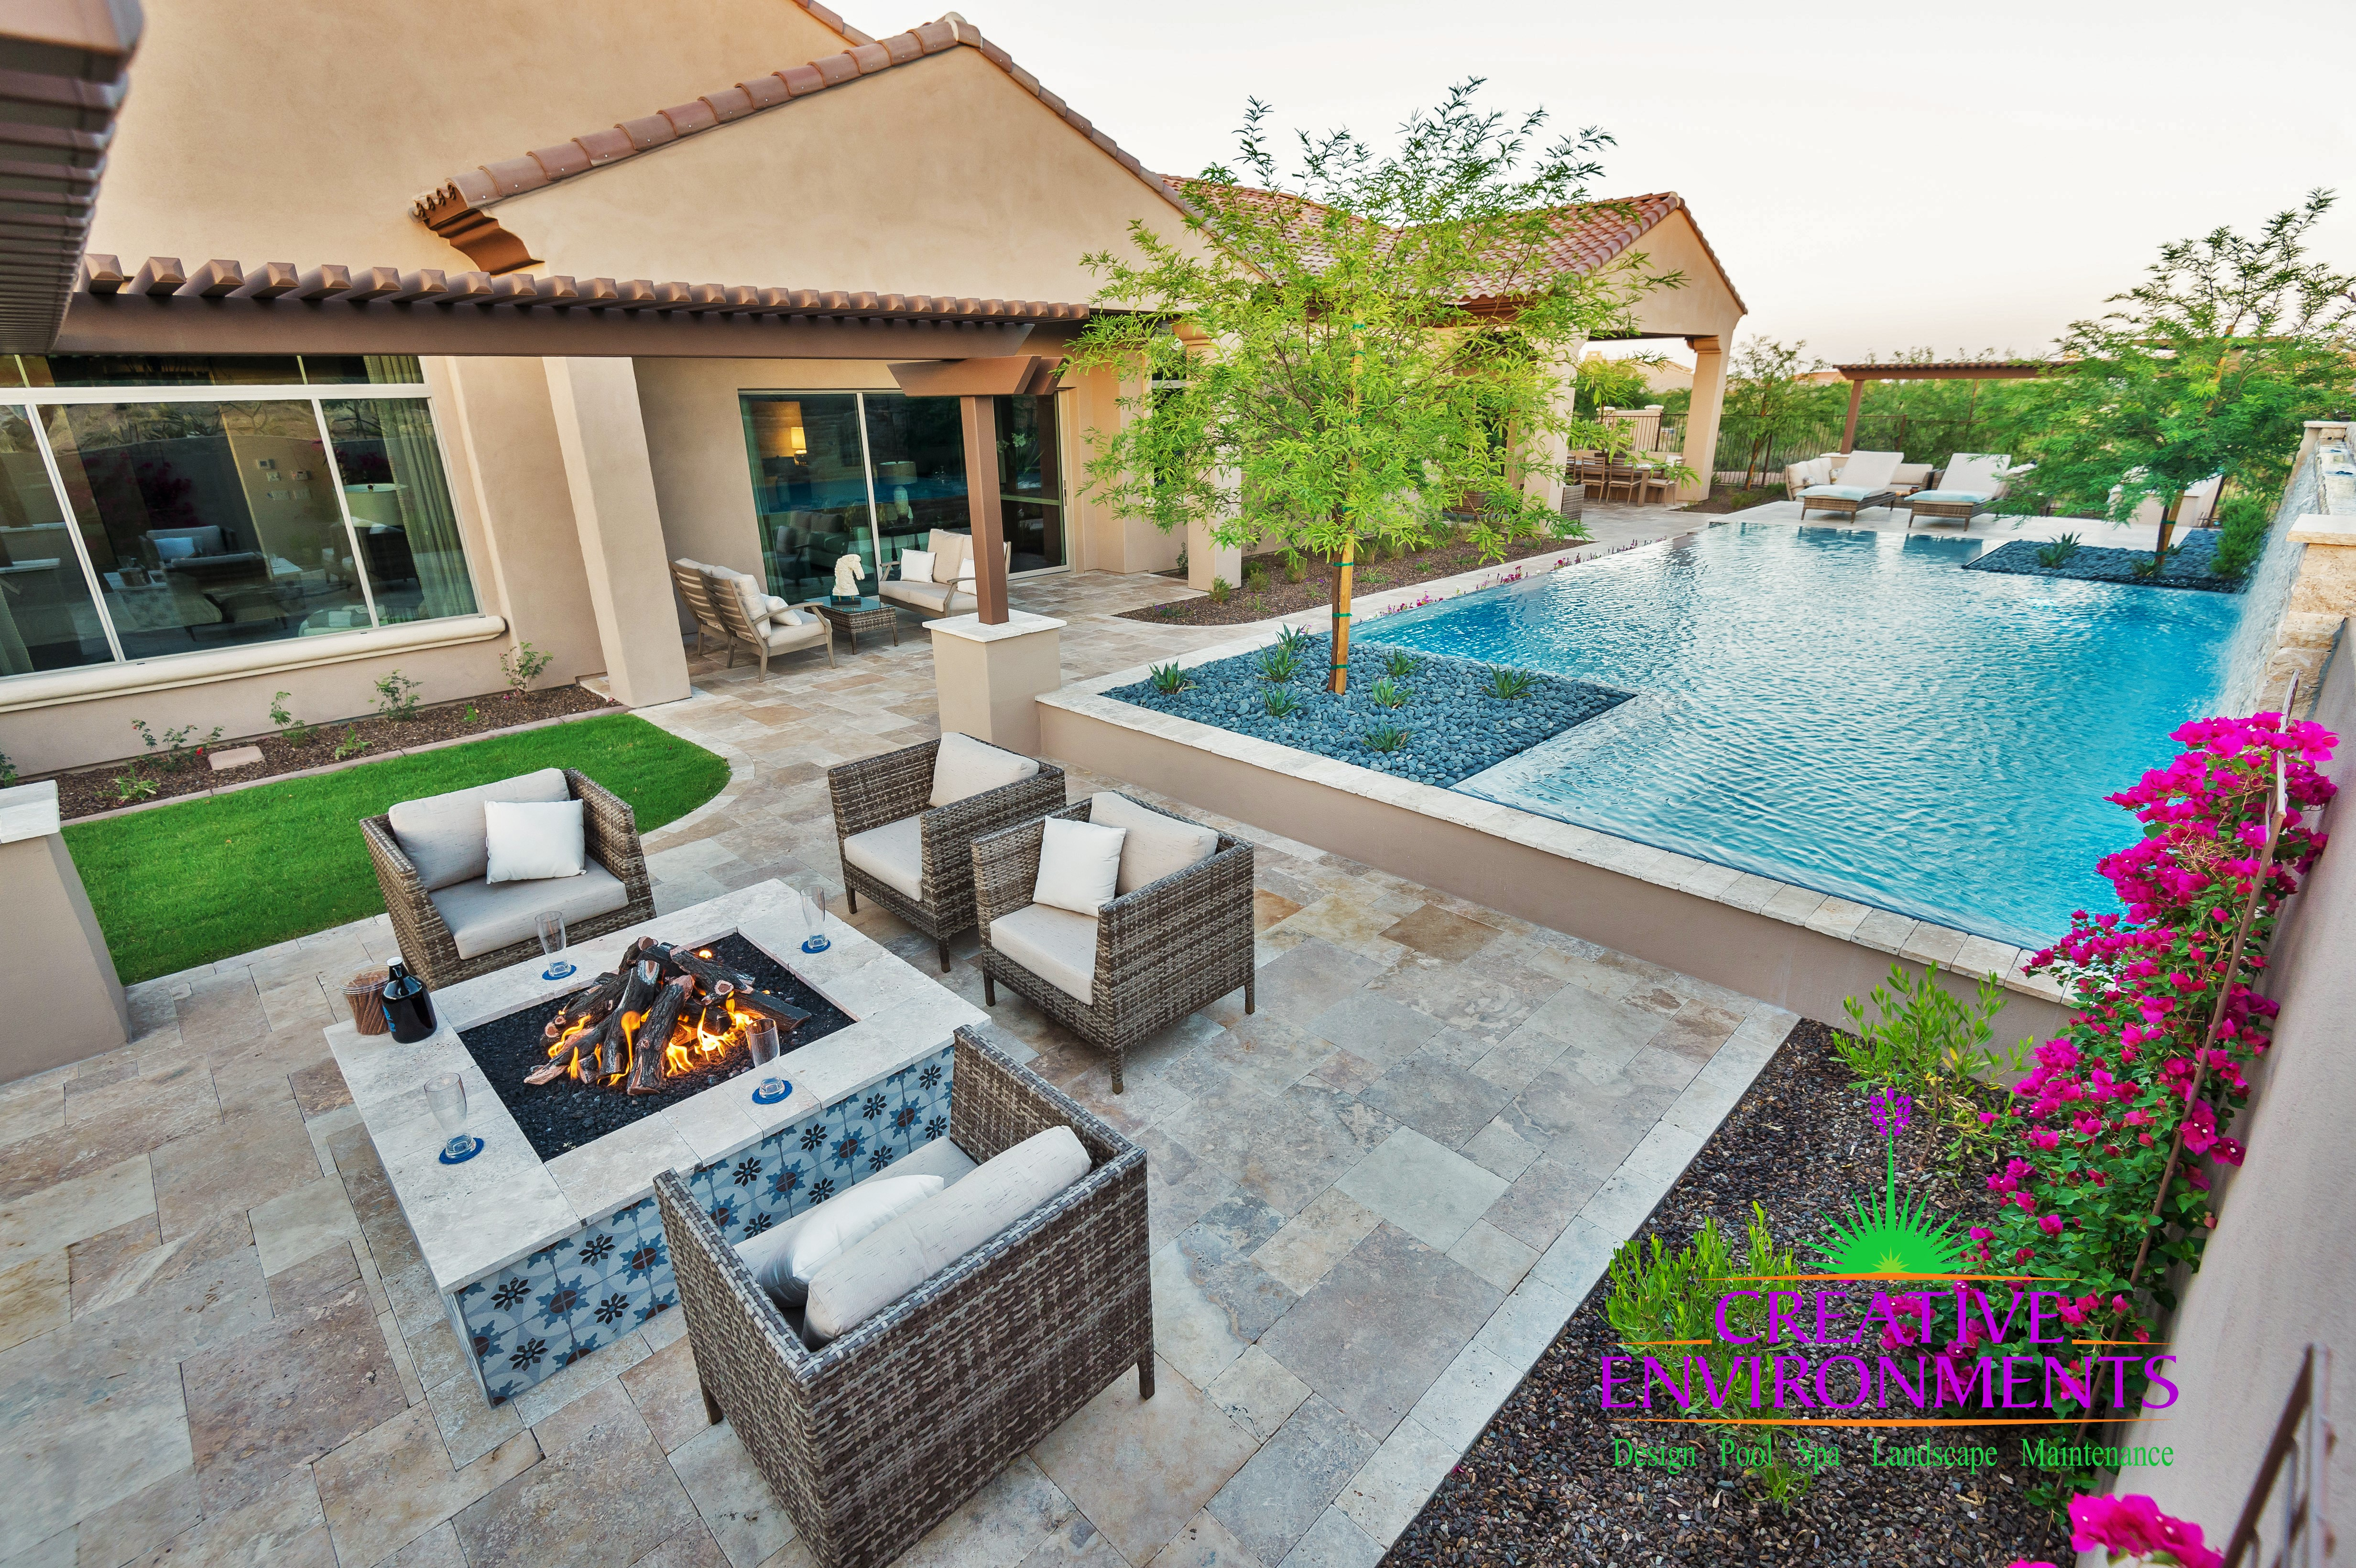 Infinity pool with a hot tub near a custom fire feature